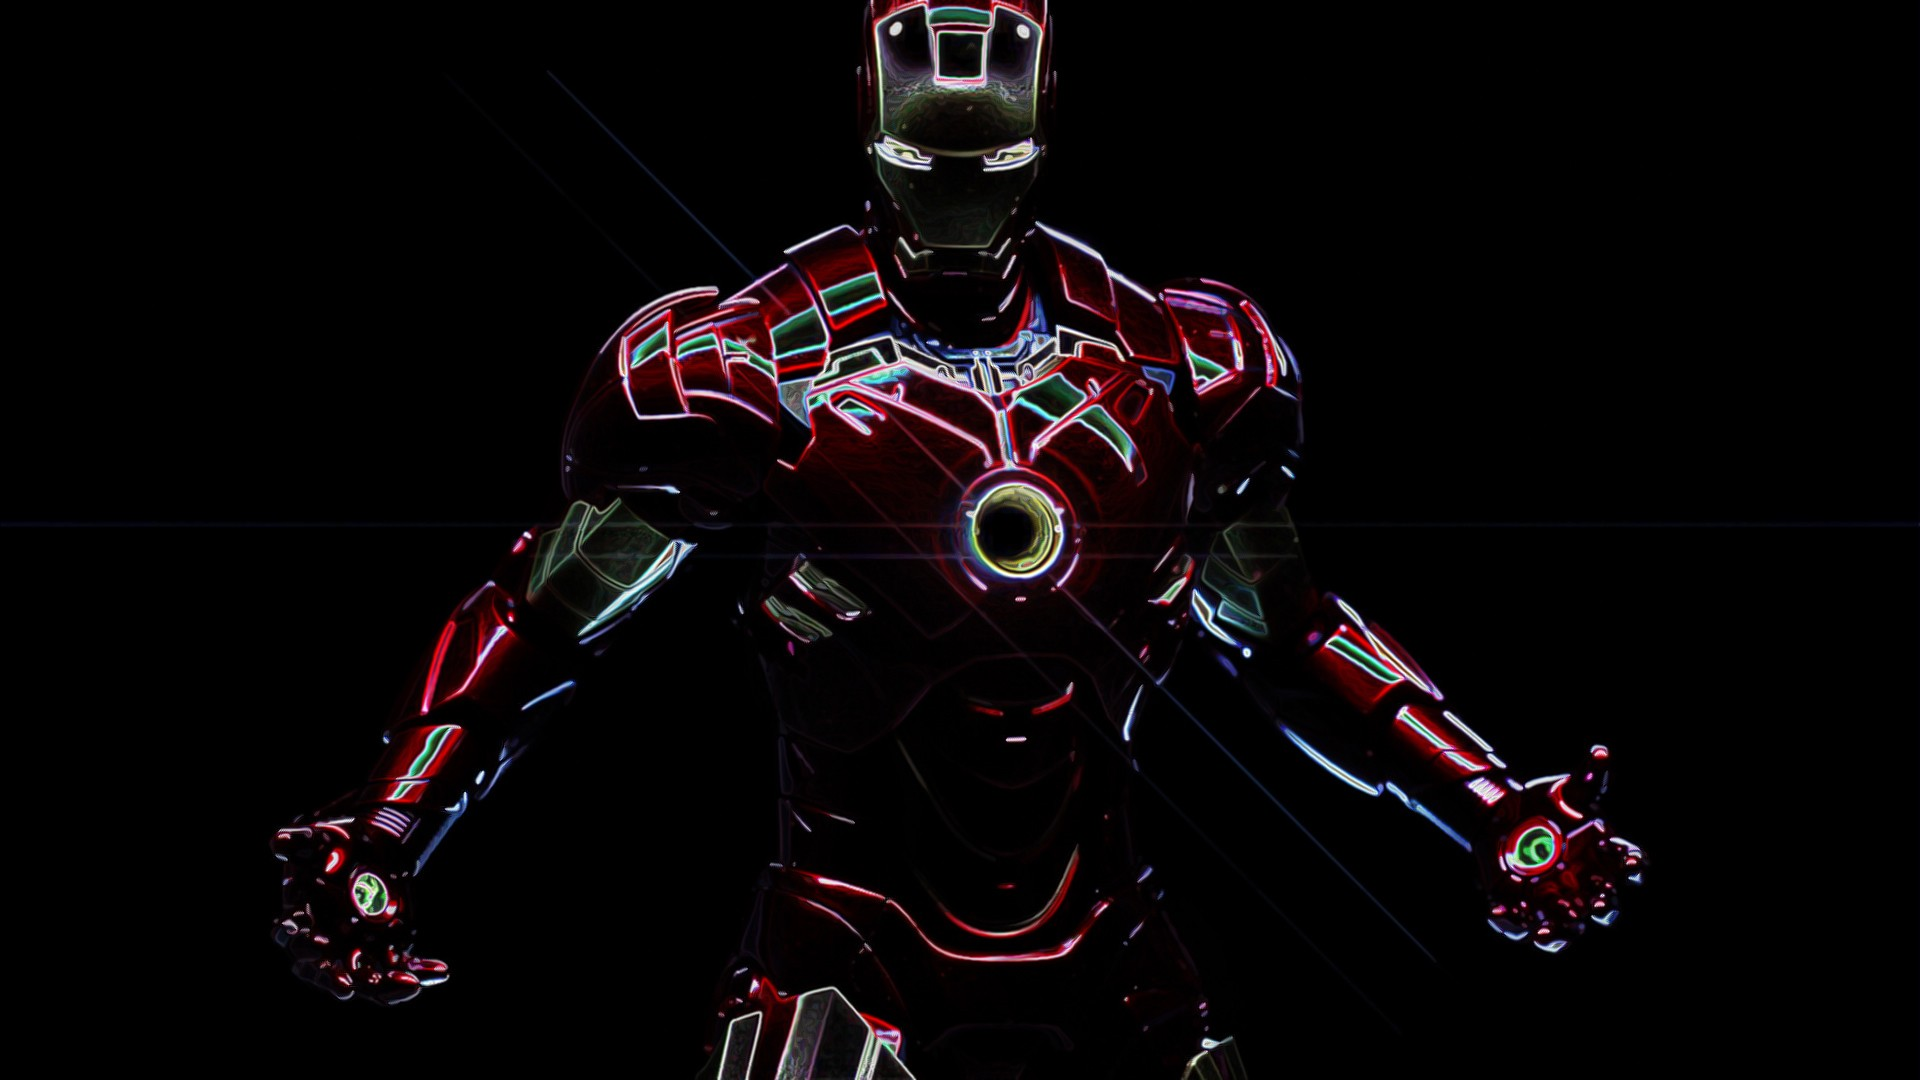 hd wallpapers 1080p with superheroes – iron man (7 of 23) | hd